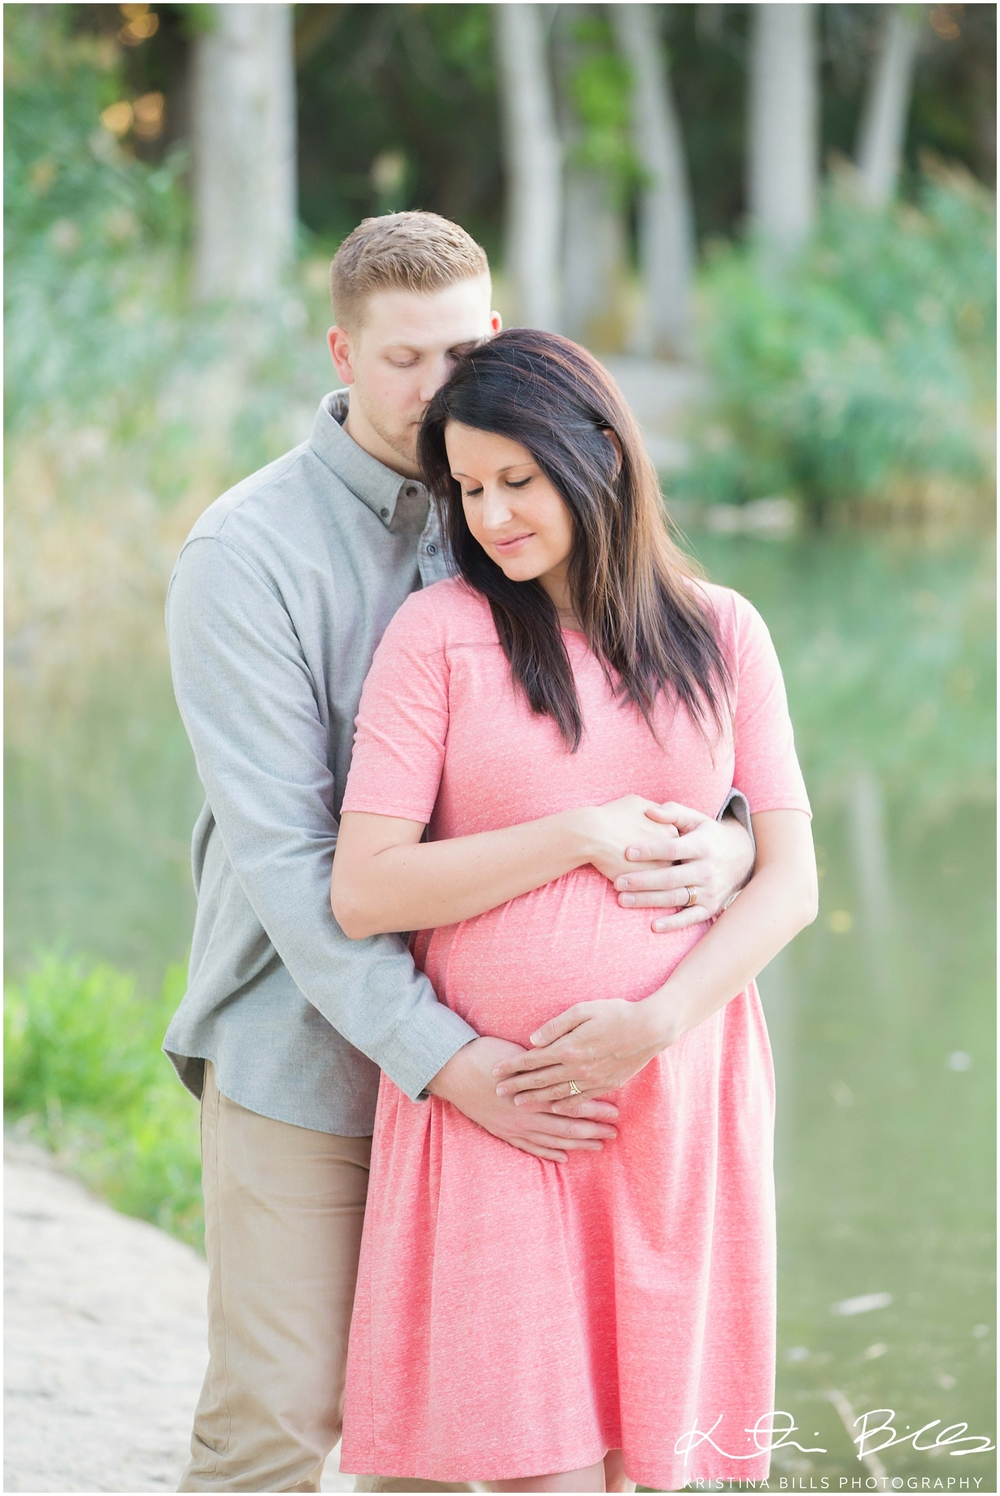 the thurston family utah maternity photographer kristina utahmaternityphotographer 0001 jpg